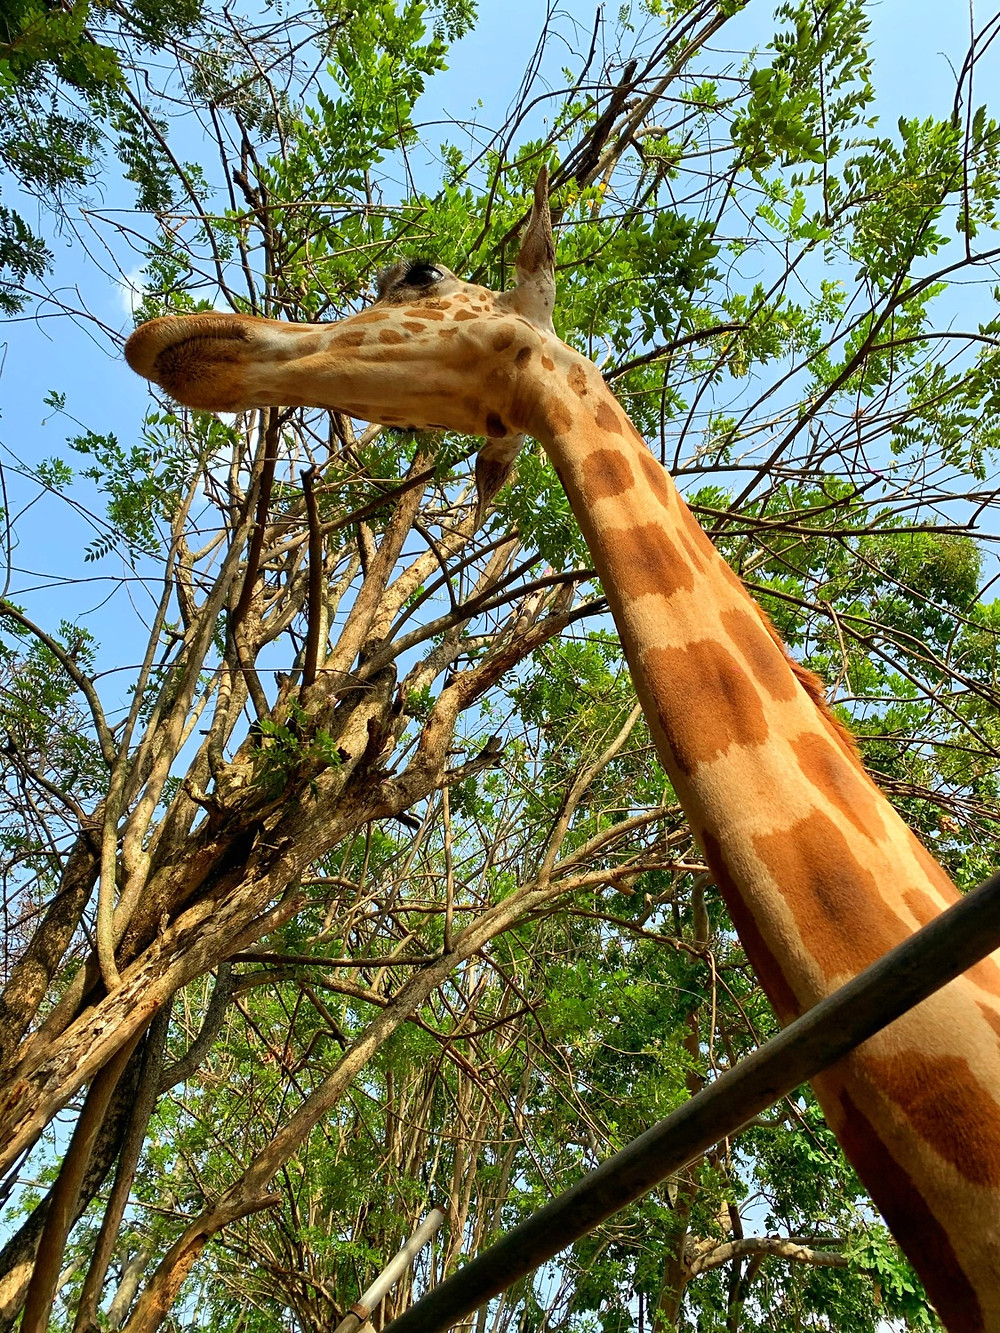 Giraffe at UI zoo